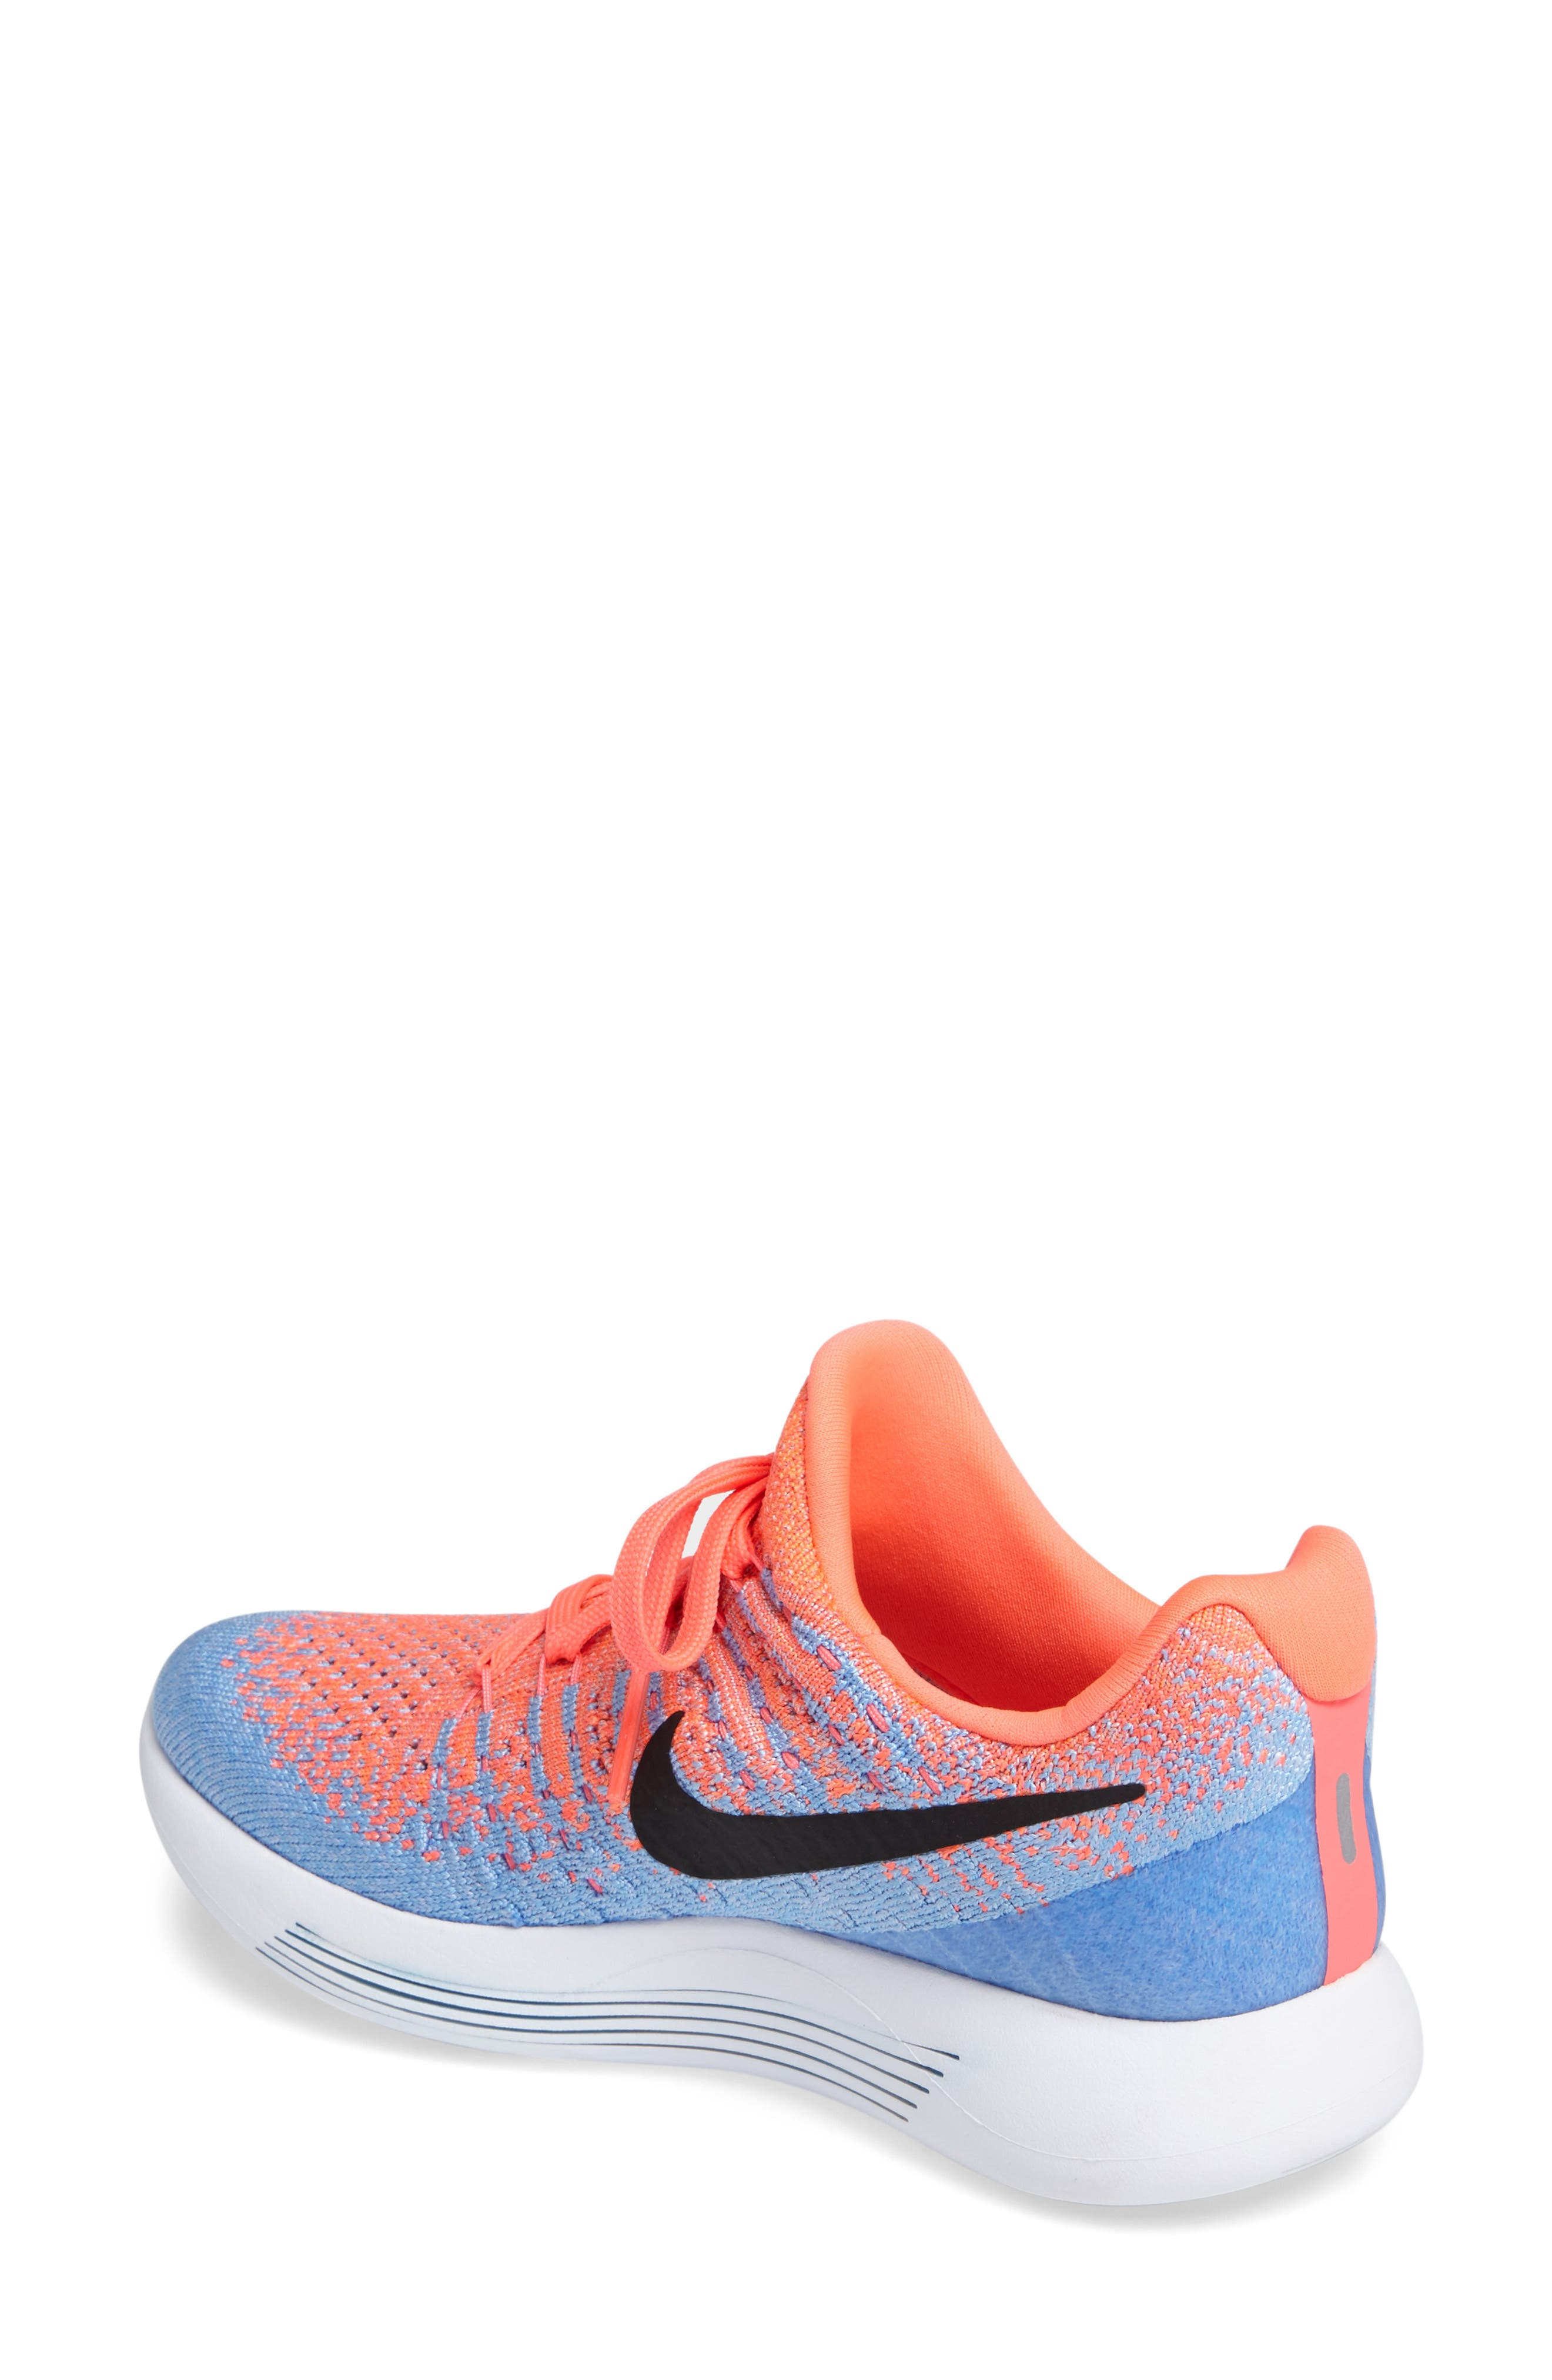 ,                             LunarEpic Low Flyknit 2 Running Shoe,                             Alternate thumbnail 110, color,                             650